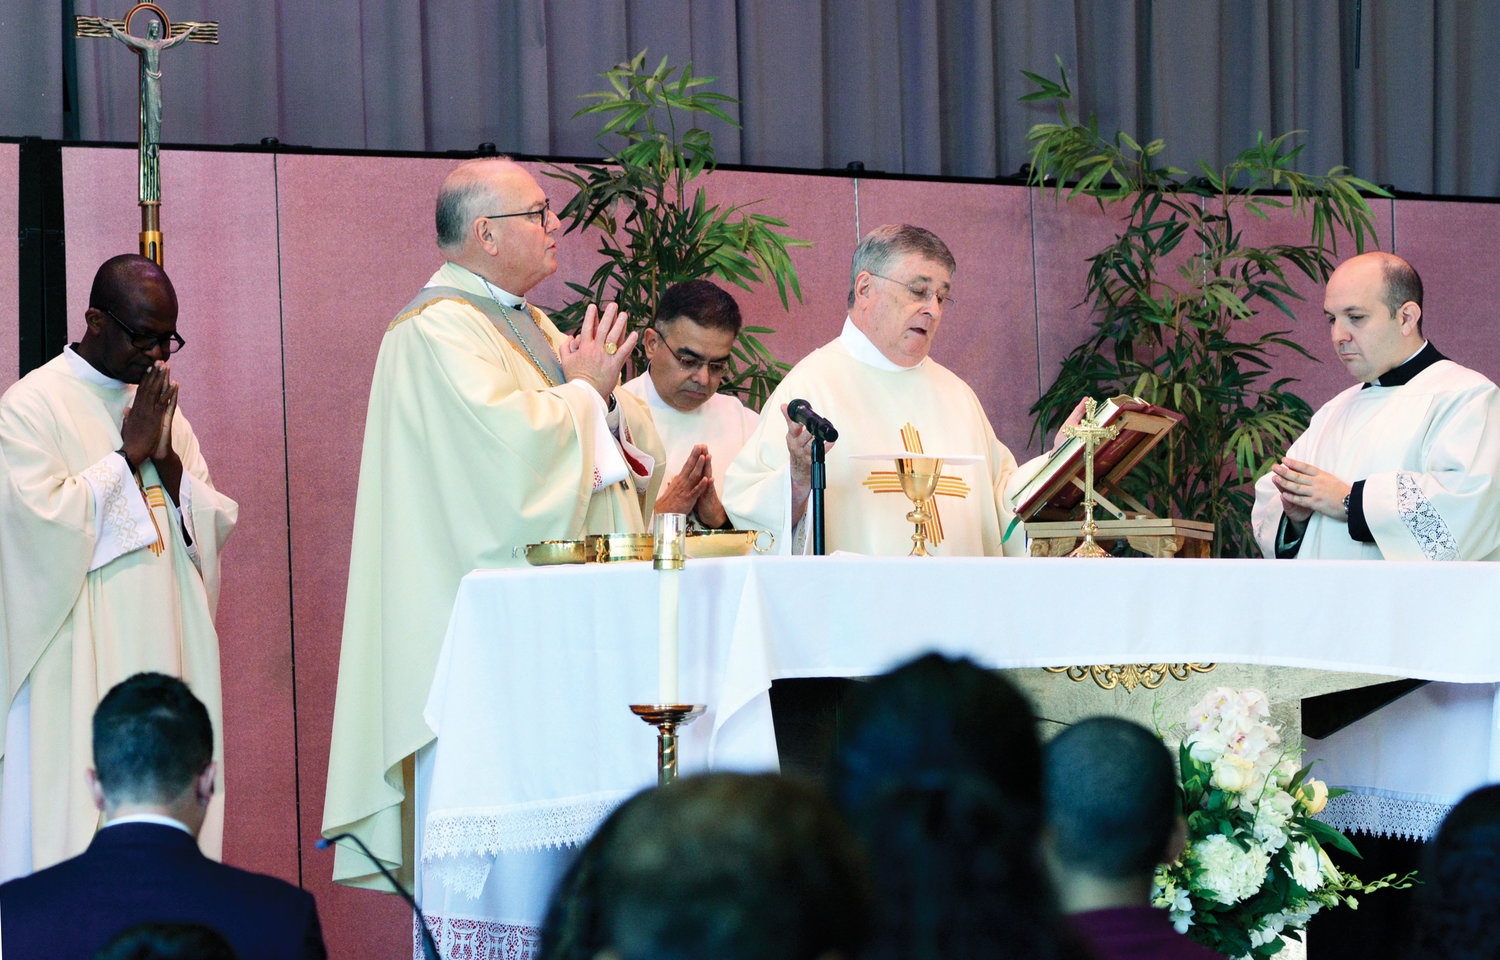 Msgr. John Graham, former pastor of St. Raymond and now pastor of St. Frances de Chantal in the Bronx and dean of the East Bronx, prays during the morning liturgy. Father James Cruz, pastor of St. Raymond, stands between the cardinal and Msgr. Graham.